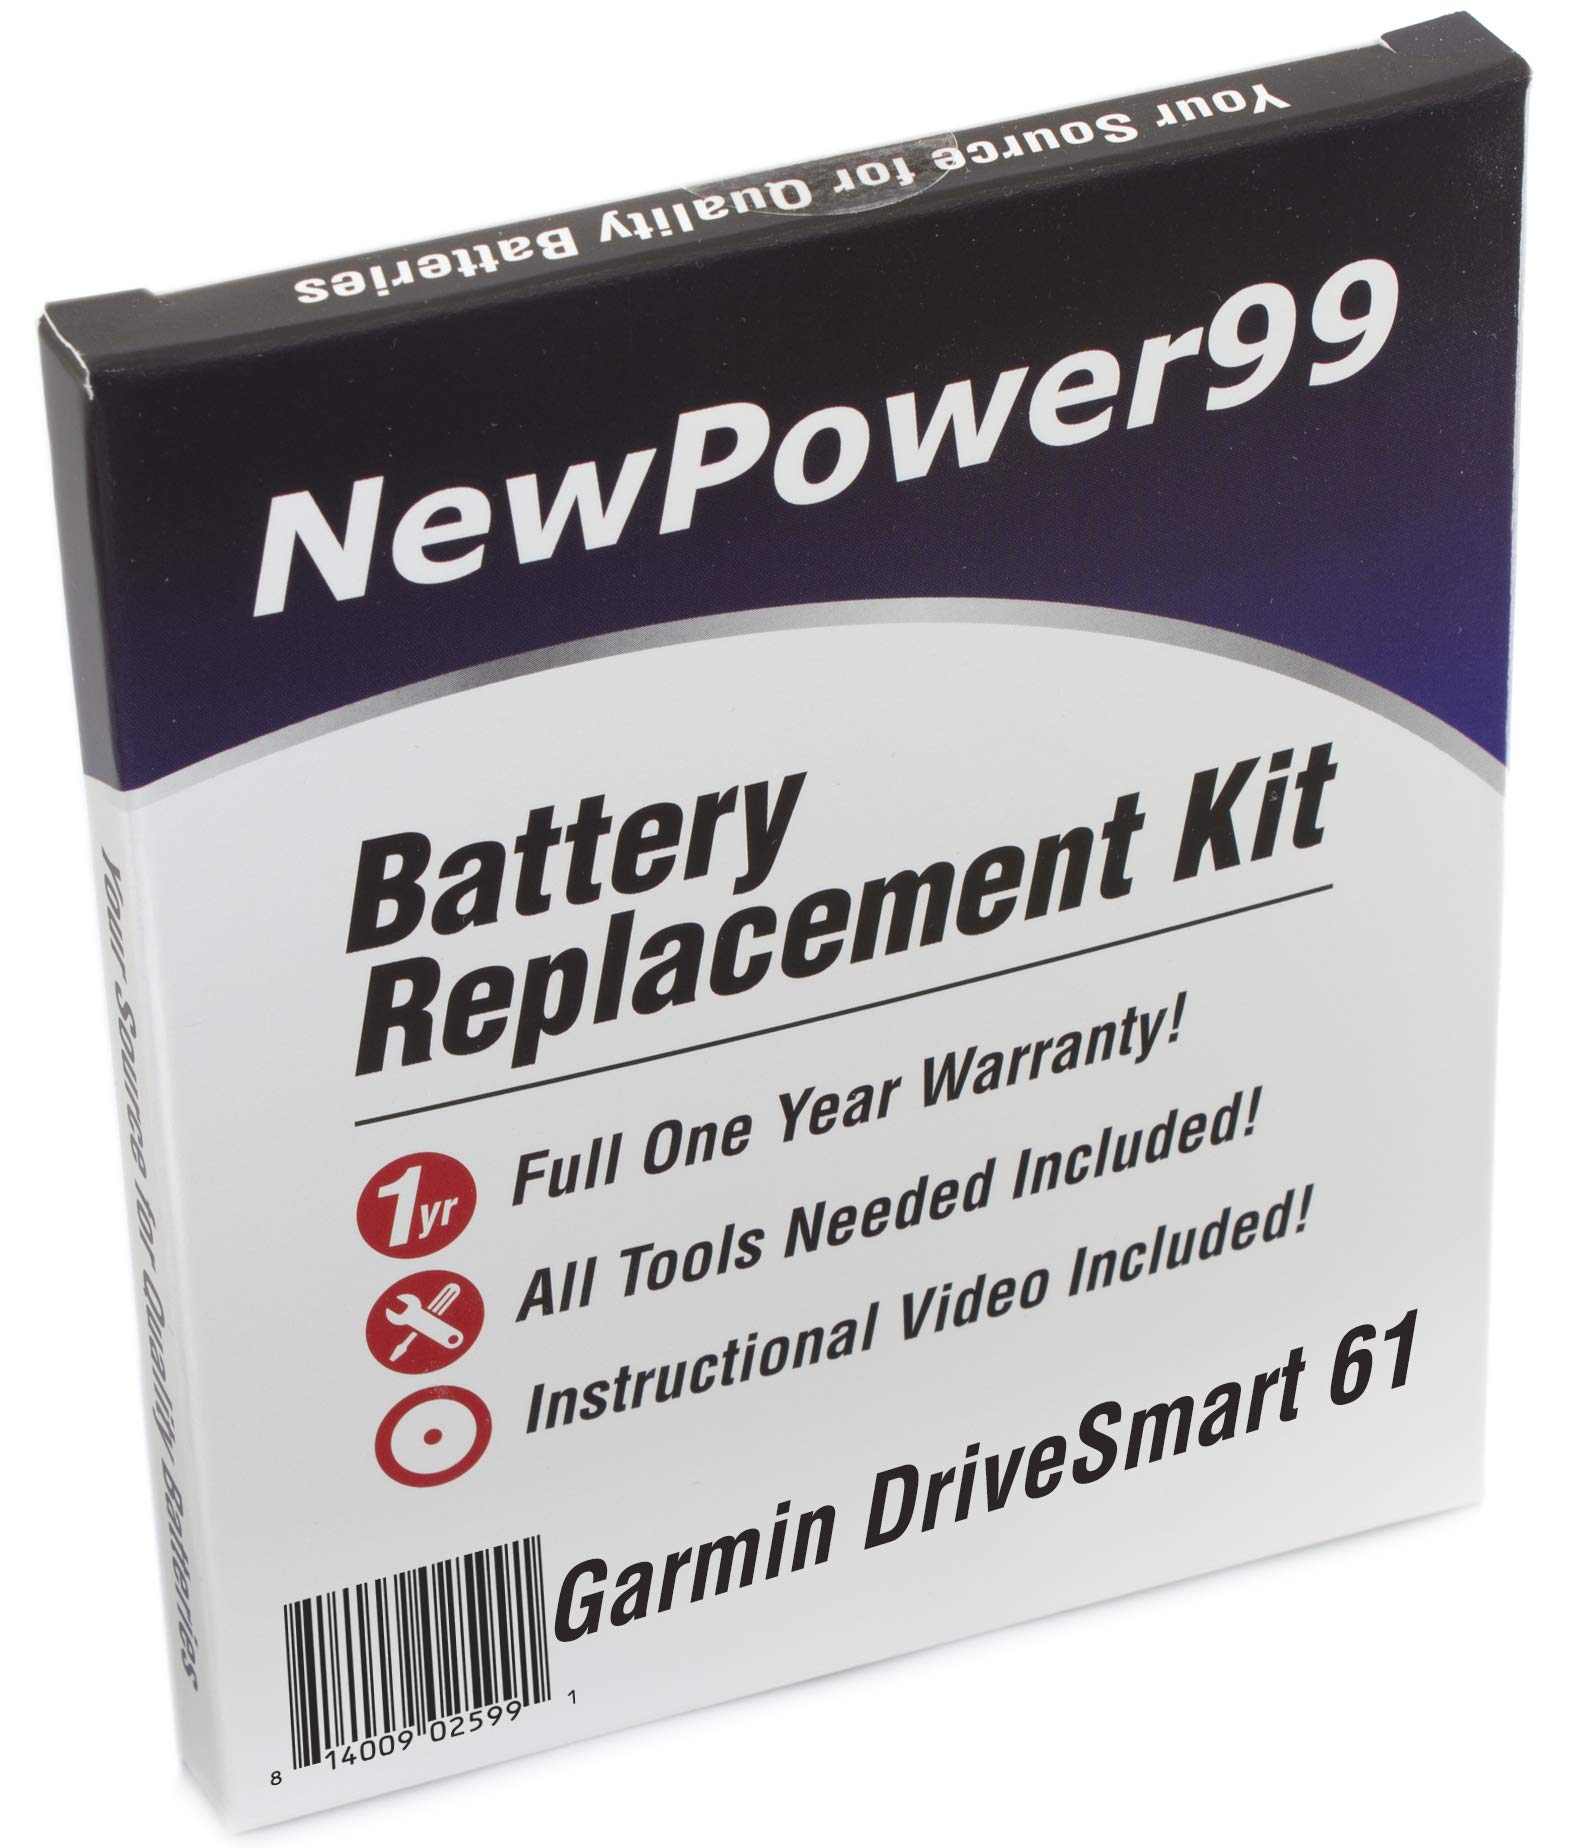 NewPower99 Battery Replacement Kit for Garmin DriveSmart 61 with Installation Video, Tools, and Extended Life Battery.